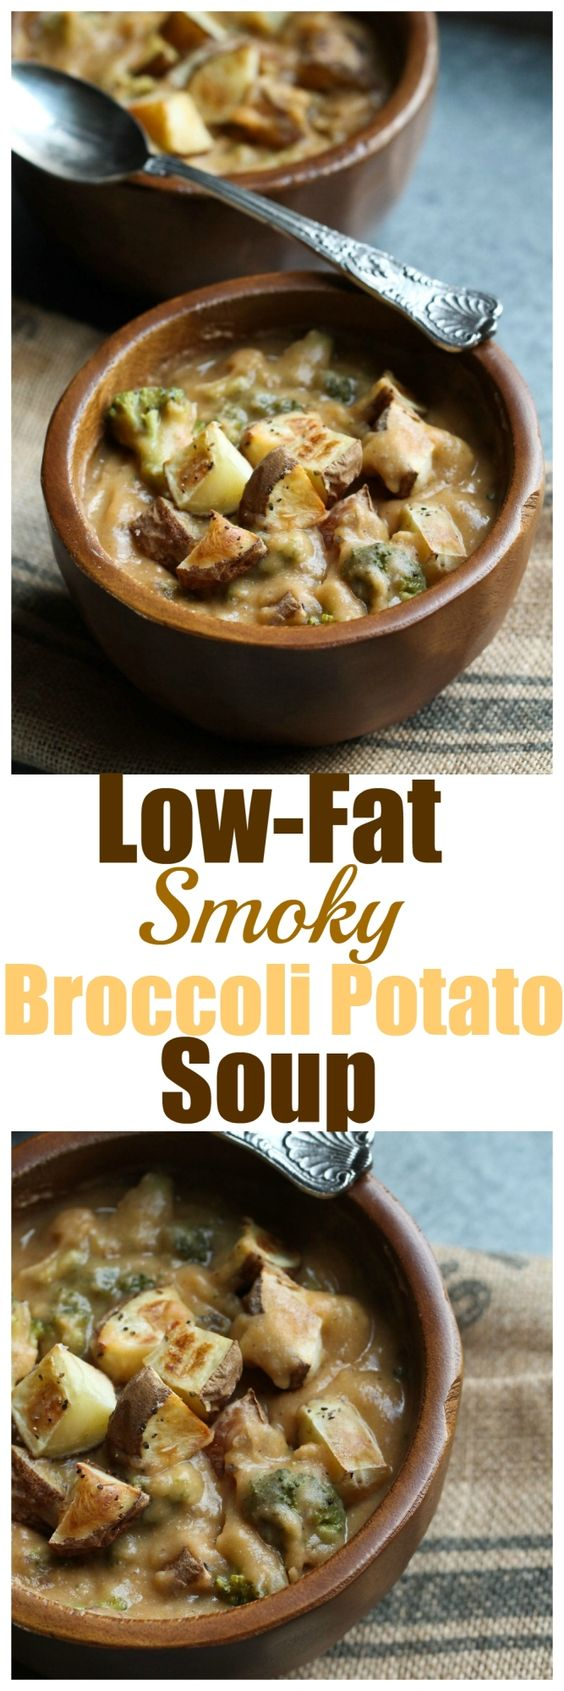 Low-Fat Smoky Broccoli Potato Soup. Vegan, dairy-free, gluten-free, oil-free broccoli potato soup with a smoky flavor and ready in less than an hour.